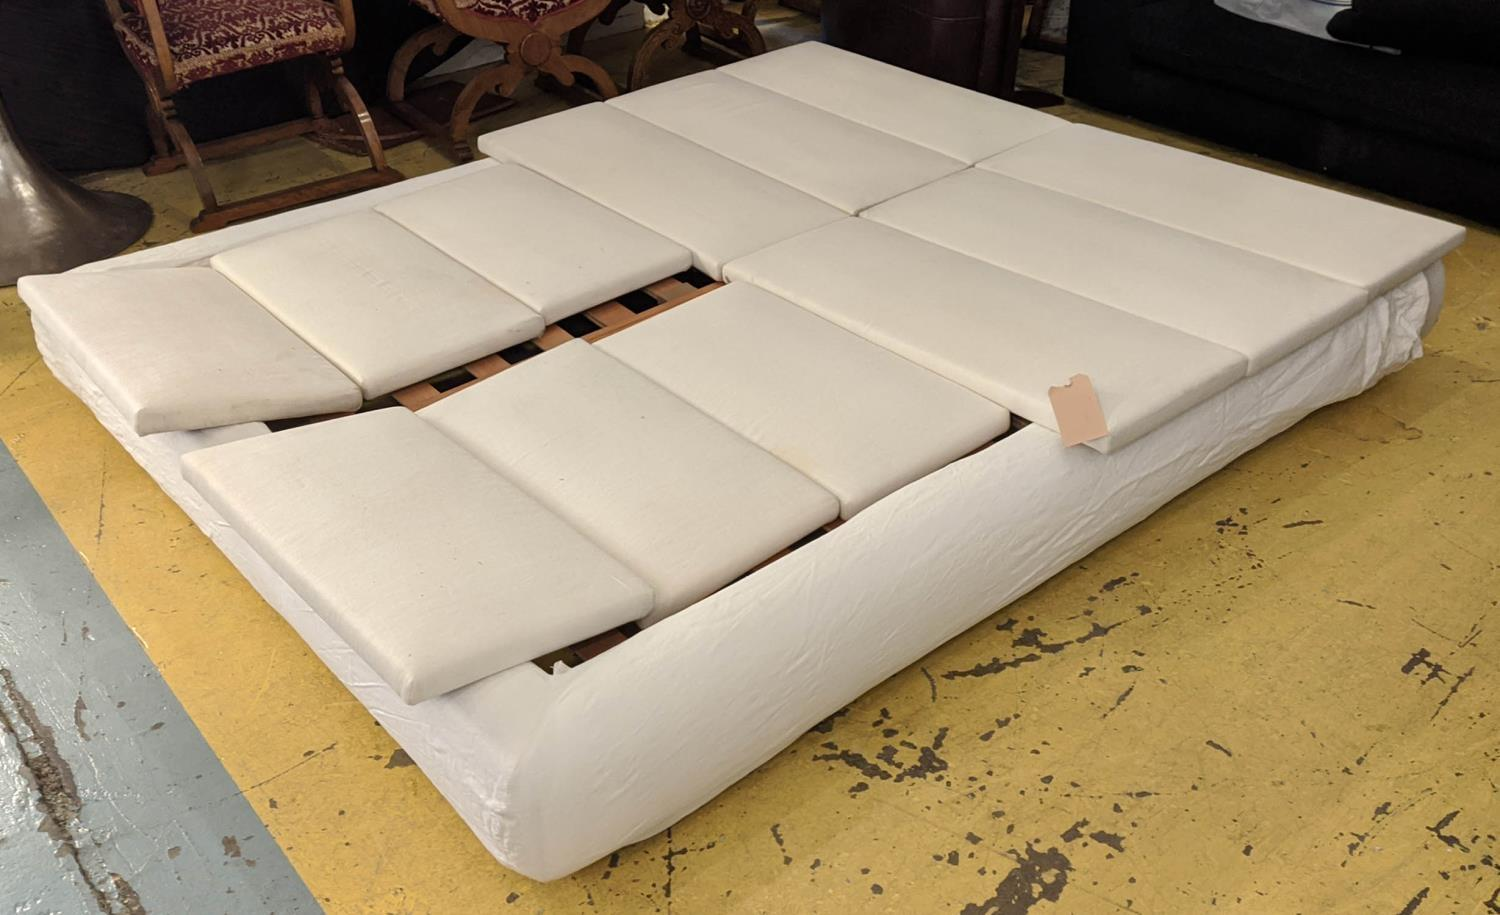 POLIFORM DREAM BED BY MARCEL WANDERS. (with faults), 183cm W. - Image 2 of 6